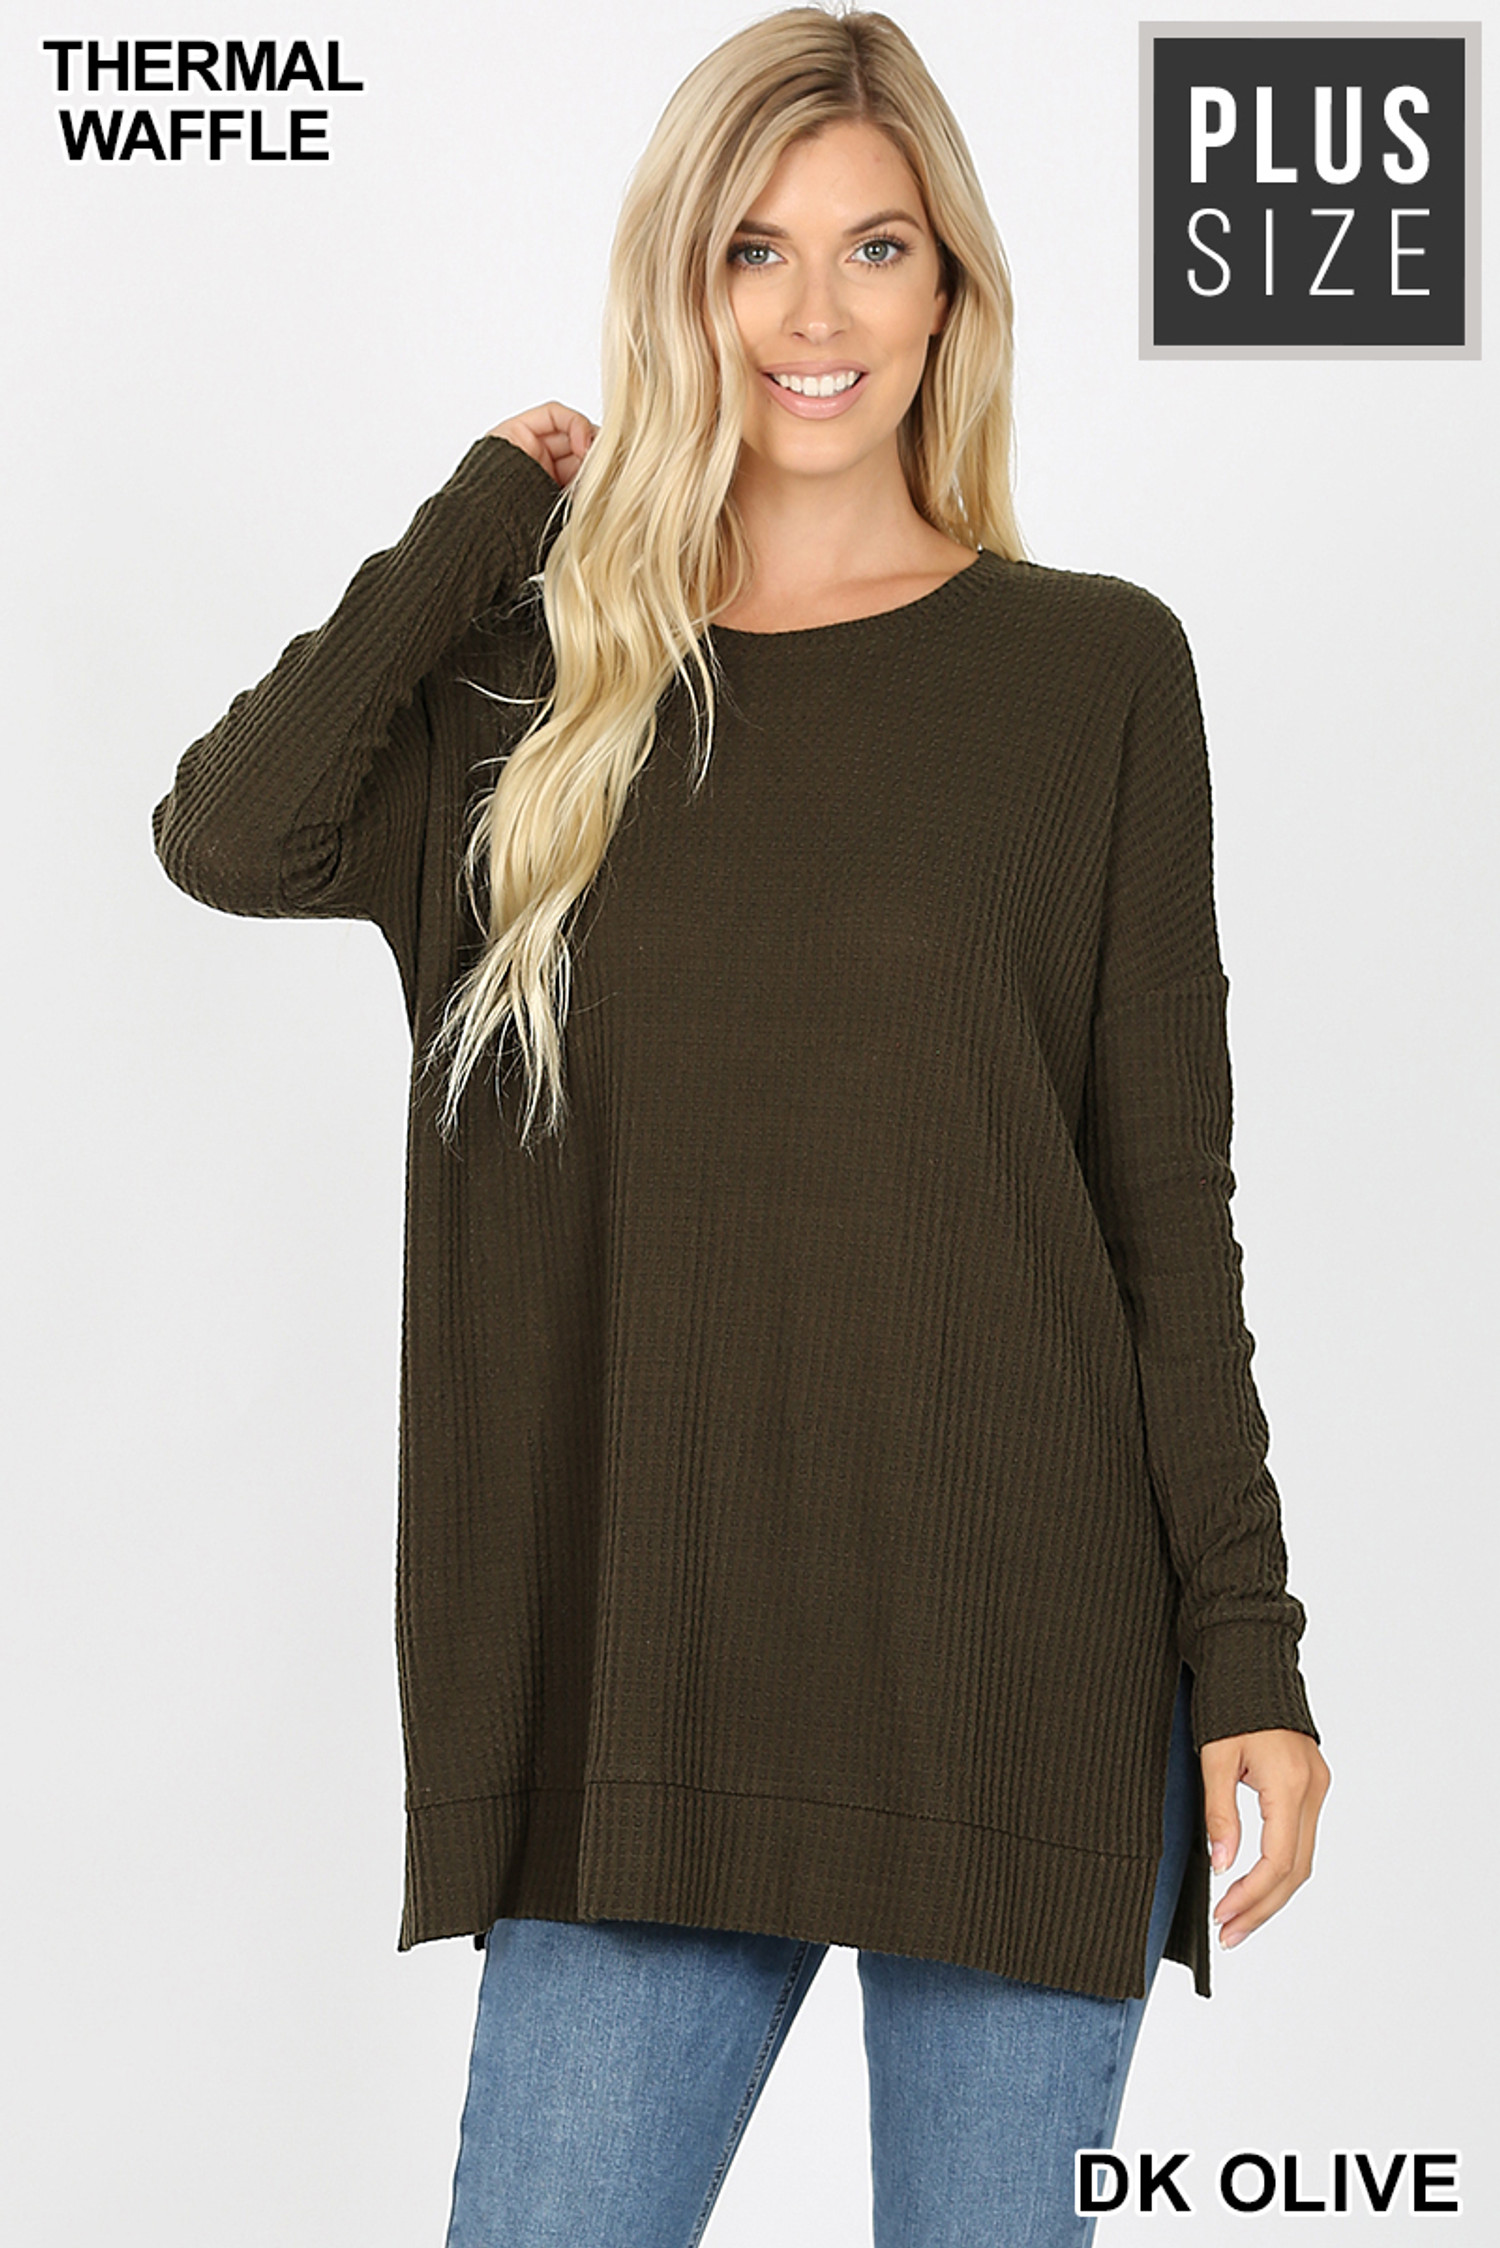 Front image of Dk Olive Brushed Thermal Waffle Knit Round Neck Plus Size Sweater